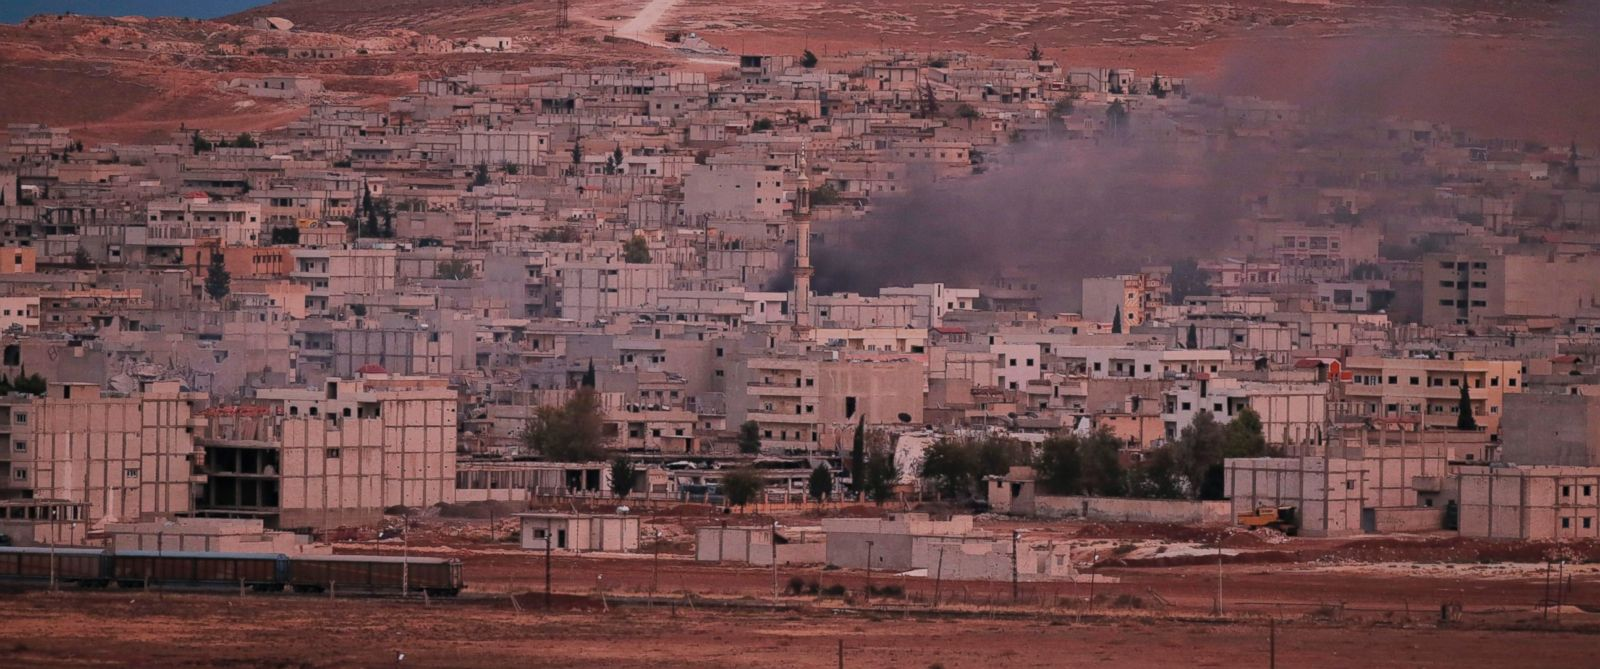 Smoke rises following a strike in Kobani, Syria, during fighting between Syrian Kurds and the militants of Islamic State group, as seen from a hilltop on the outskirts of Suruc, at the Turkey-Syria border, Oct. 19, 2014.